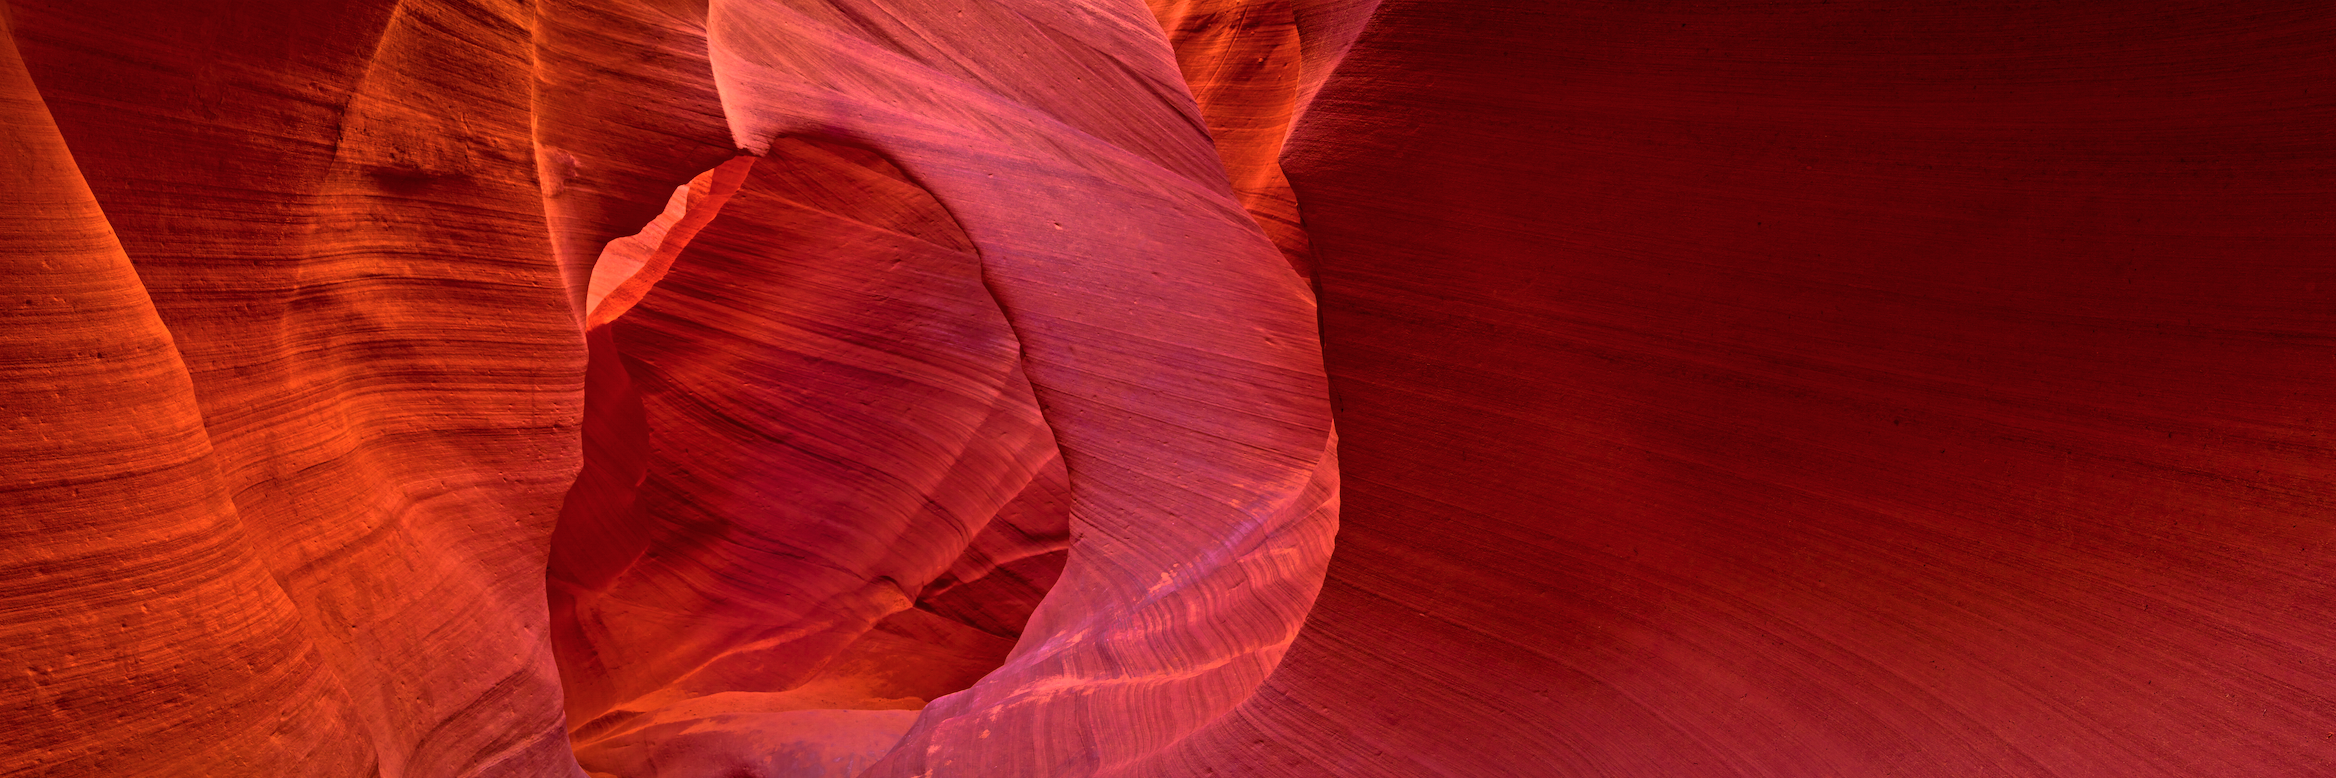 EXPLORE - Lower Antelope Canyon, Arizona